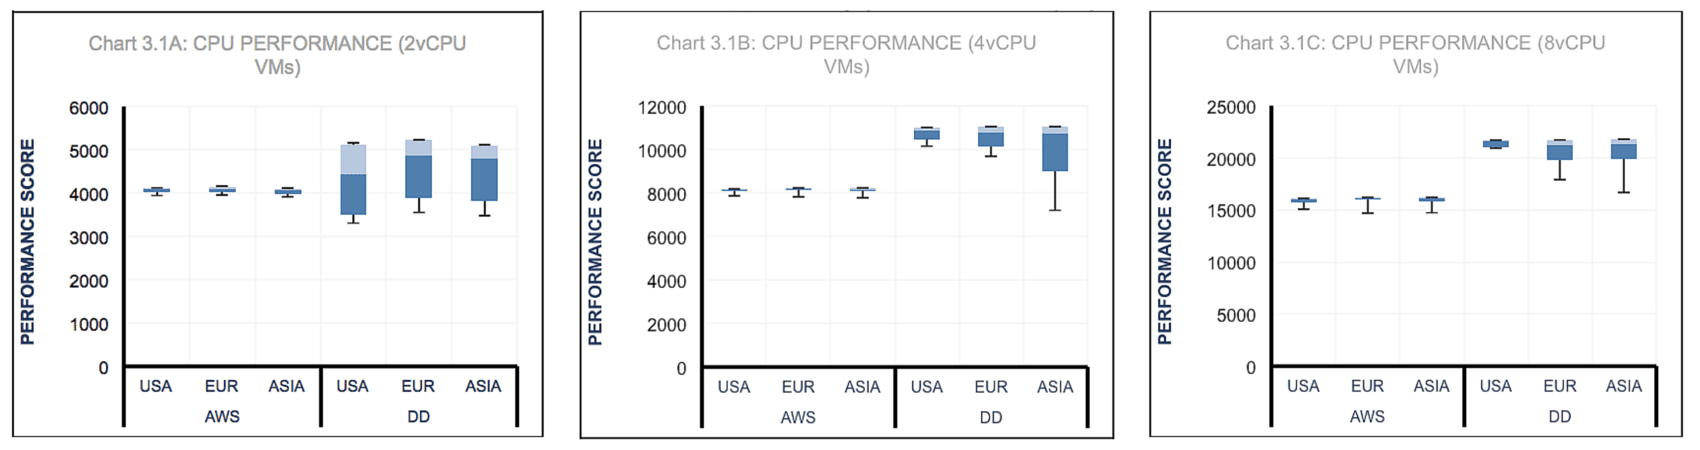 CPU Performance Comparison graphs of 2, 4 and 8vCPU VMs